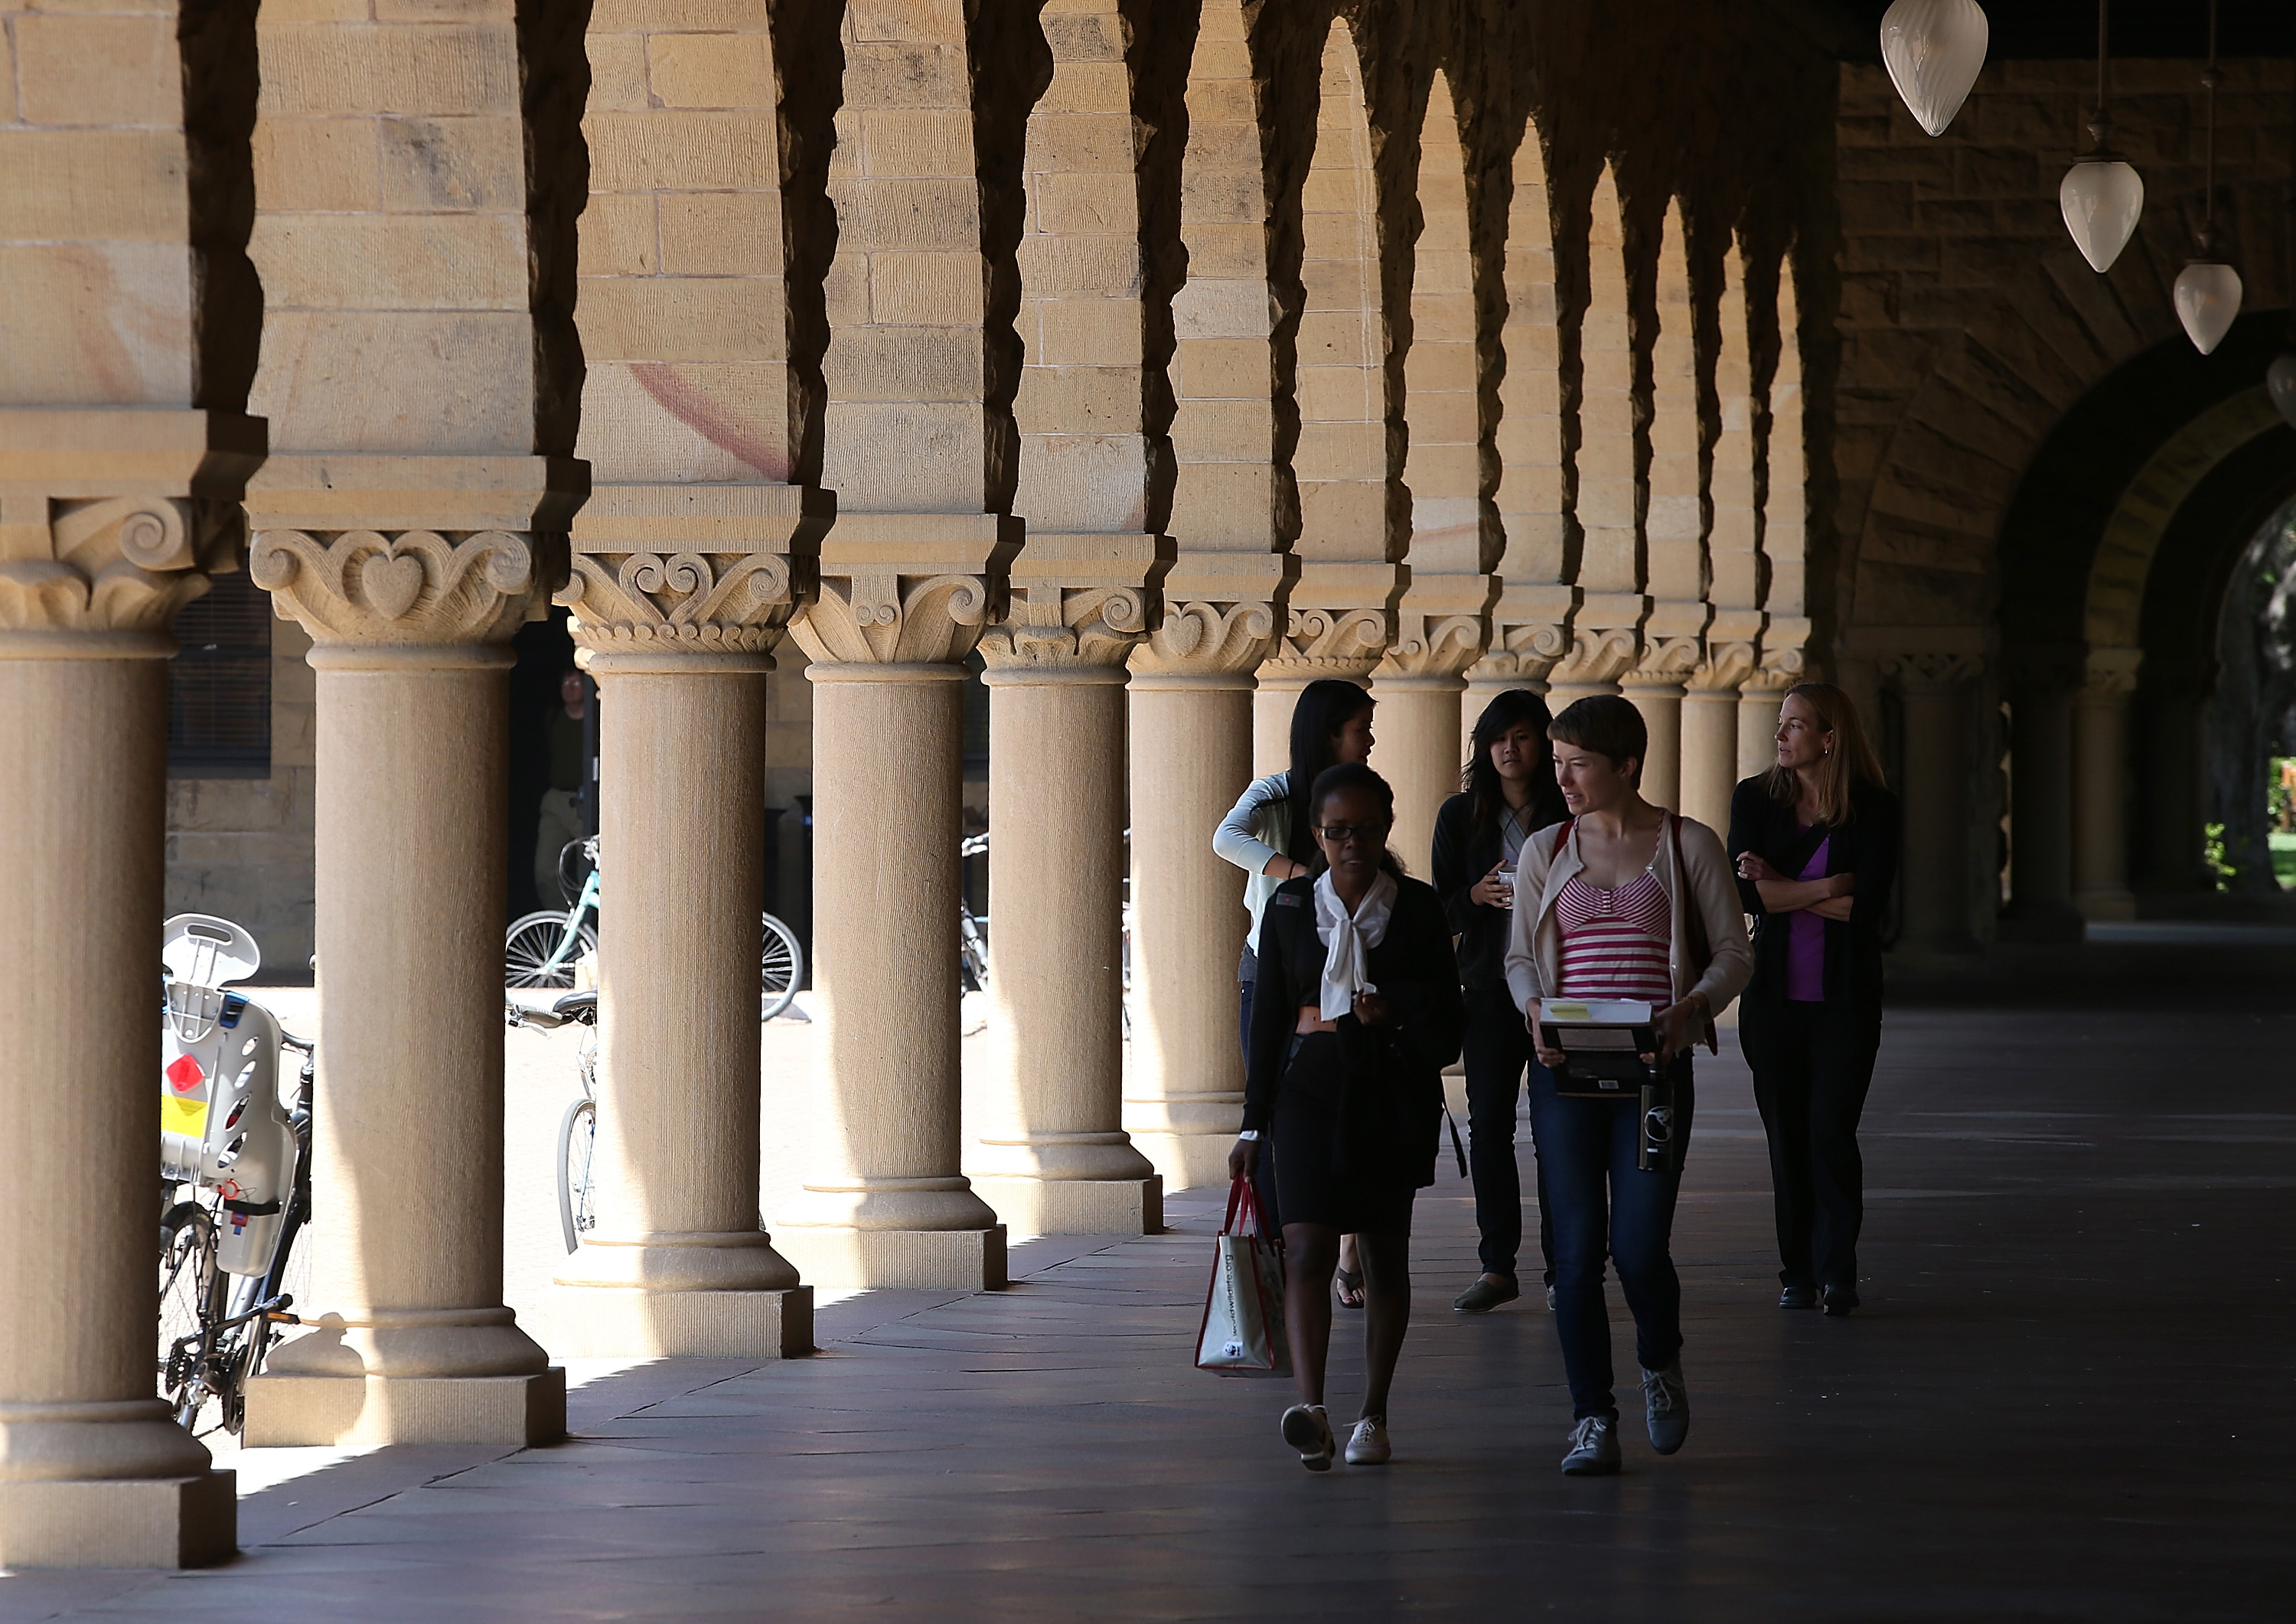 People walk through the Stanford University campus on May 22, 2014 in Stanford, California.